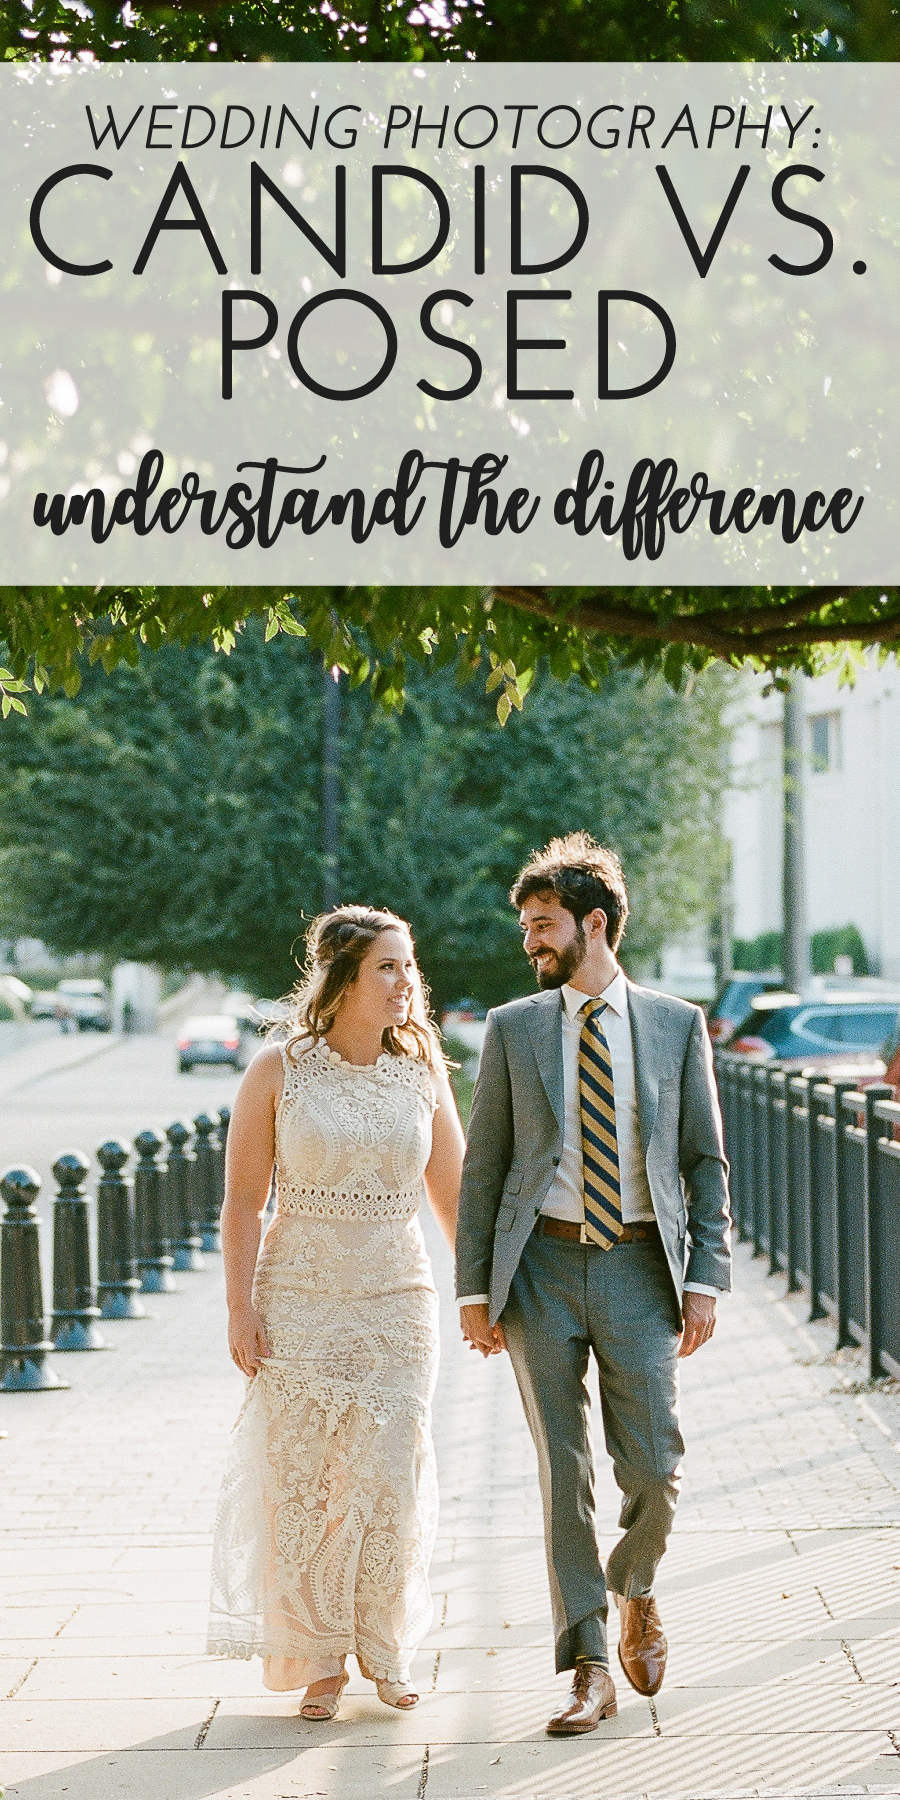 Understand the difference between candid and posed wedding photography